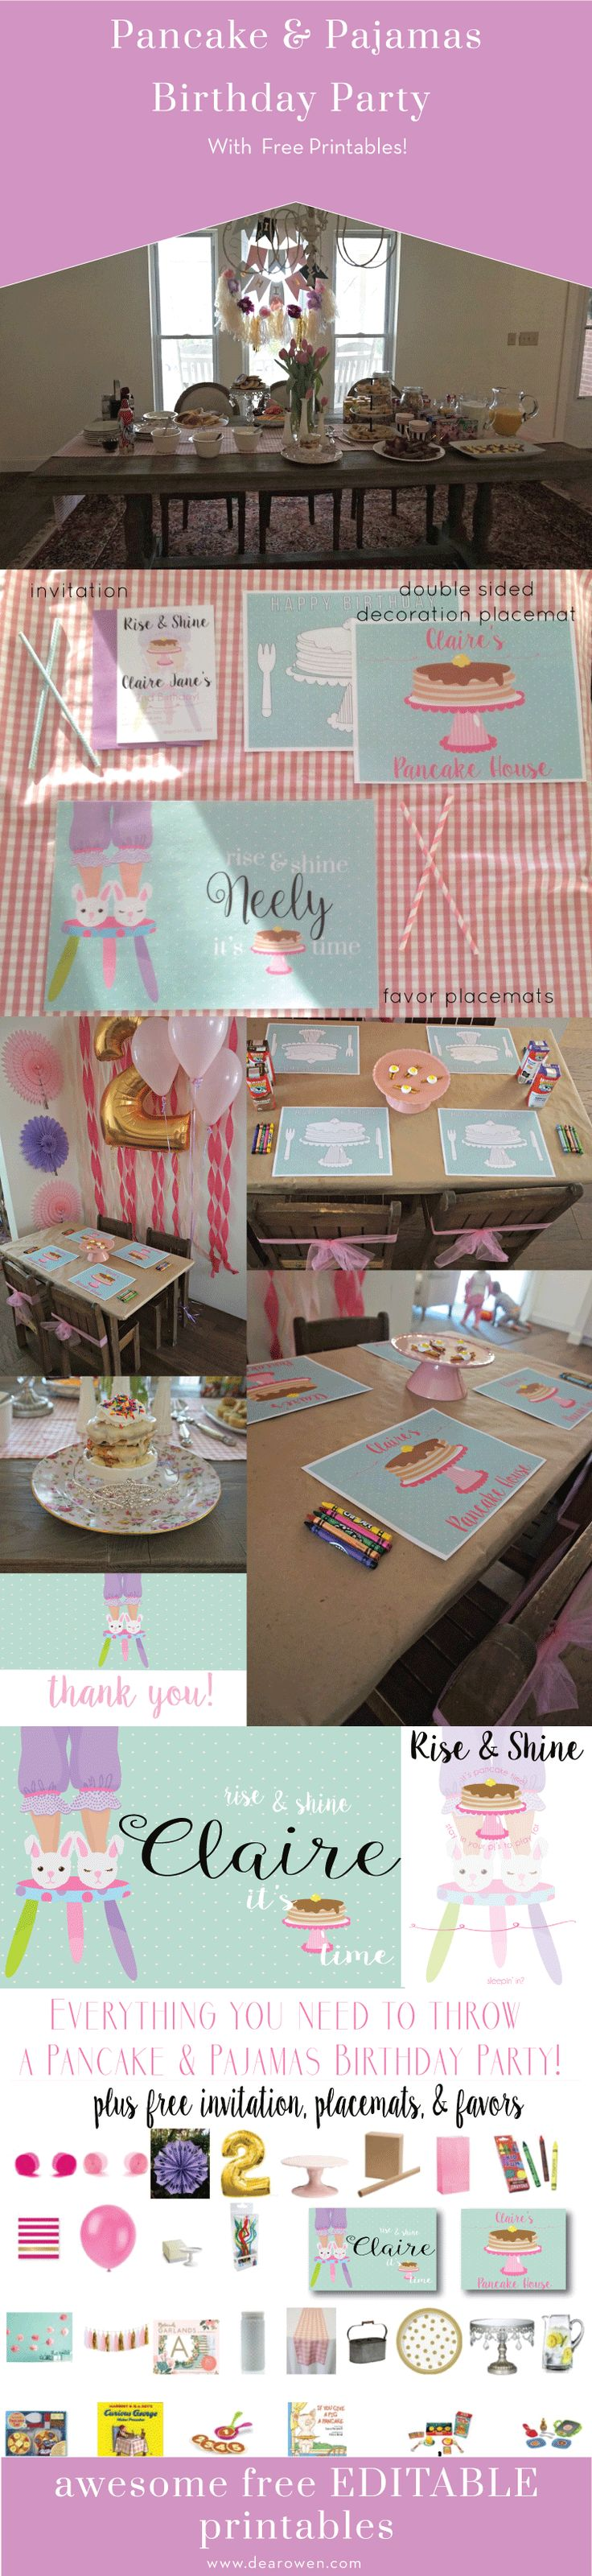 Pancakes & Pajamas Birthday Party with Free Editable Printables and everything you need to throw your own party! Girl birthday party ideas, pancakes, pajamas, free printables, easy birthday party, kids party